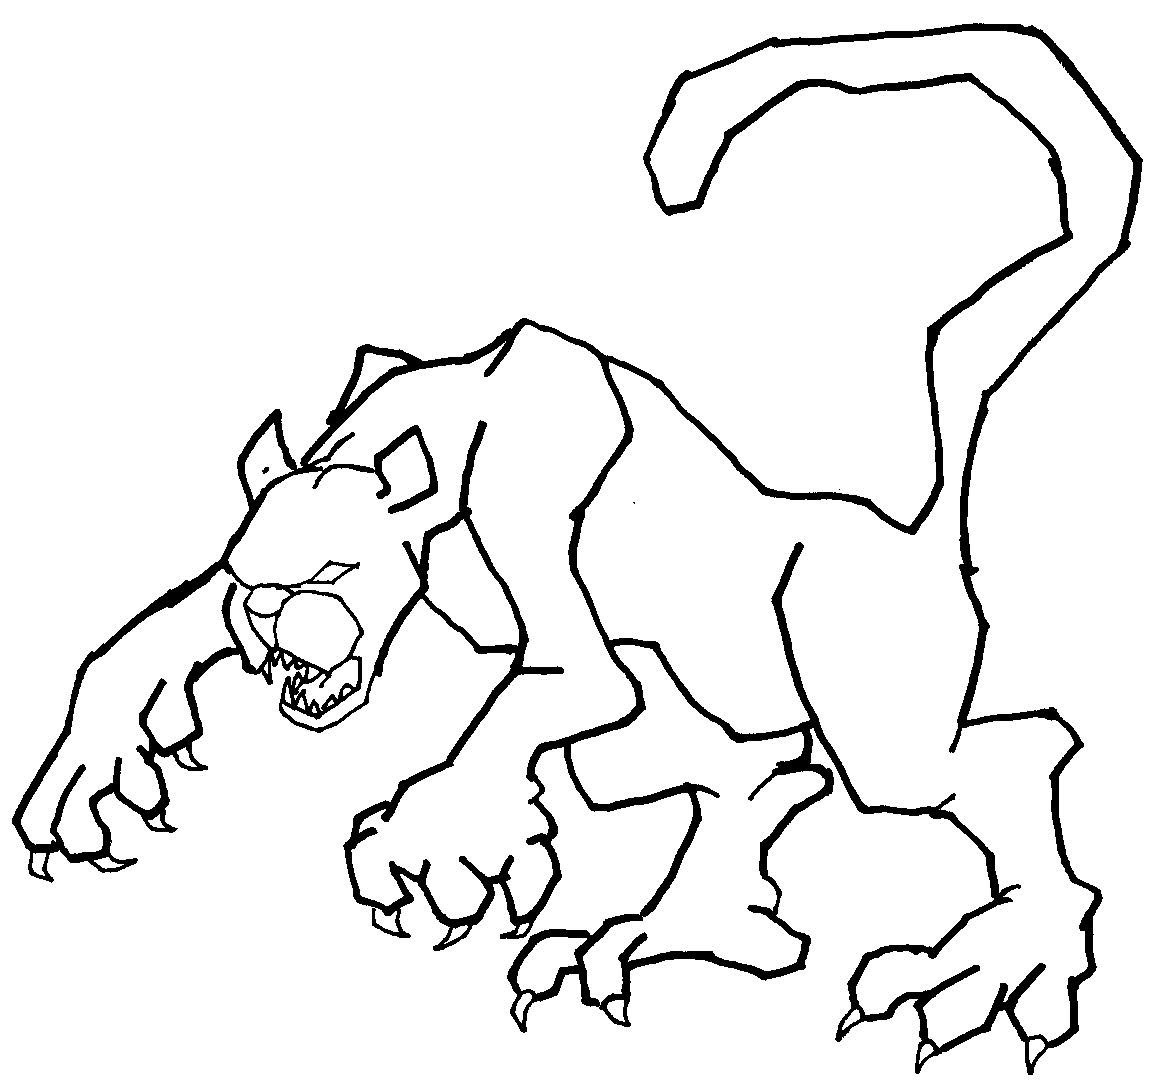 Cougar #4382 (Animals) - Printable coloring pages